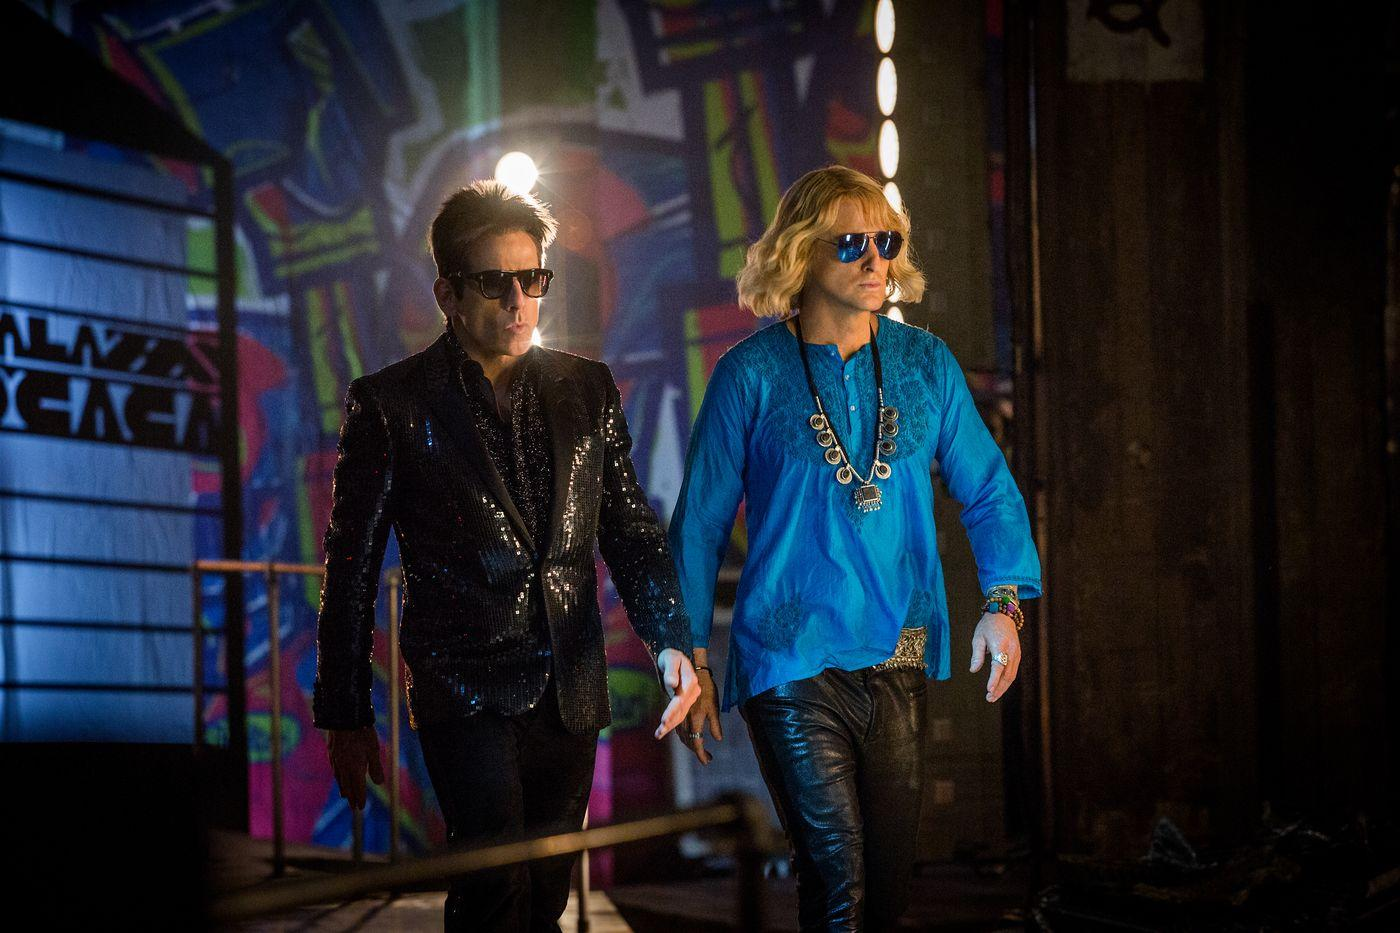 Zoolander 2 just can't relax